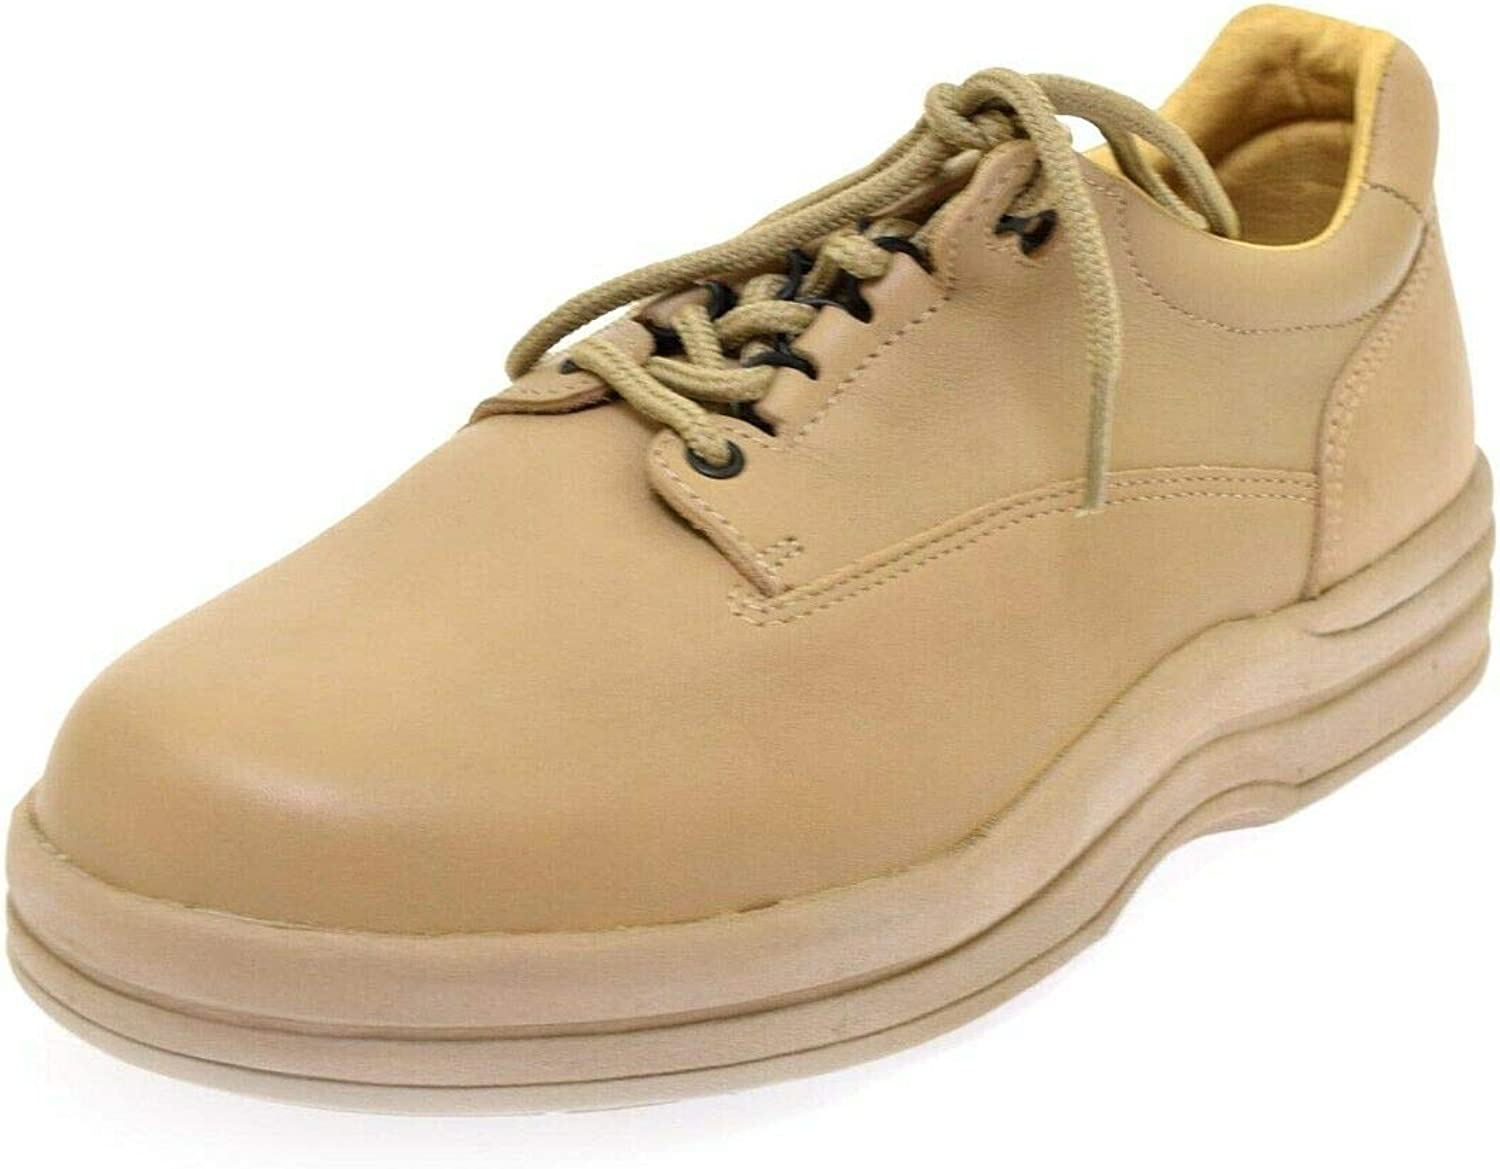 Orthopedic Shoes Taupe Blucher 9 M Lace